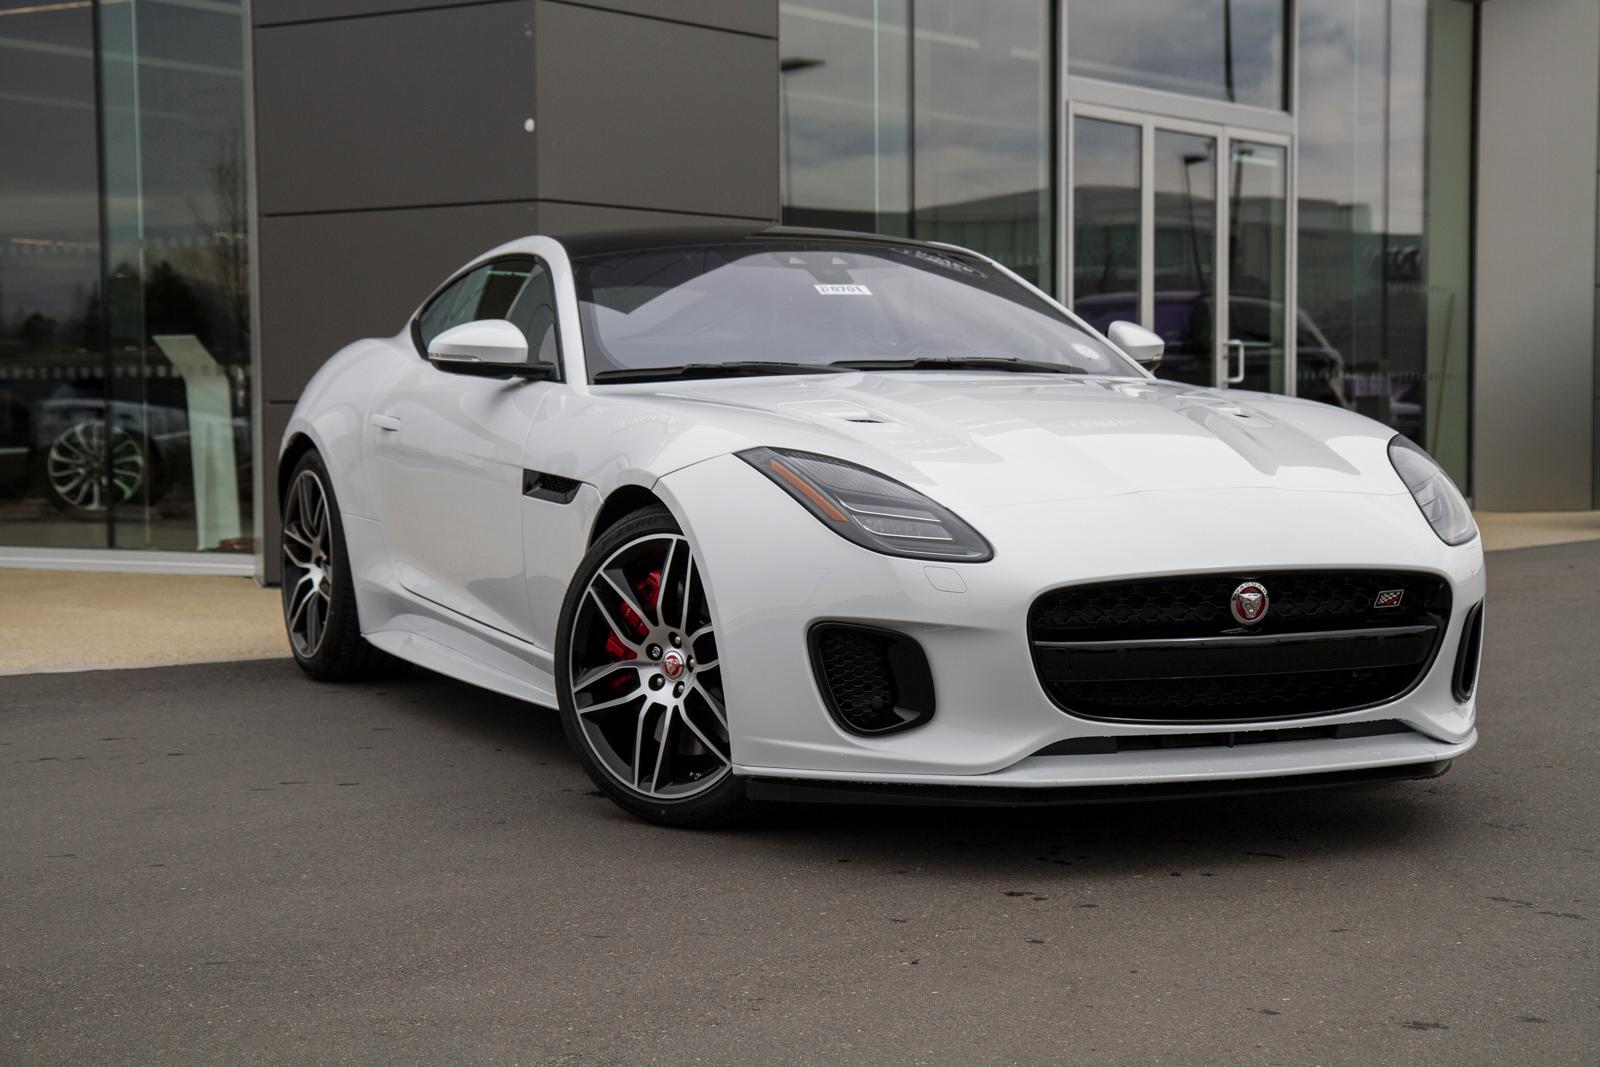 Jaguar F Type Coupe >> New 2020 Jaguar F Type Coupe Auto Checkered Flag Awd With Navigation Awd